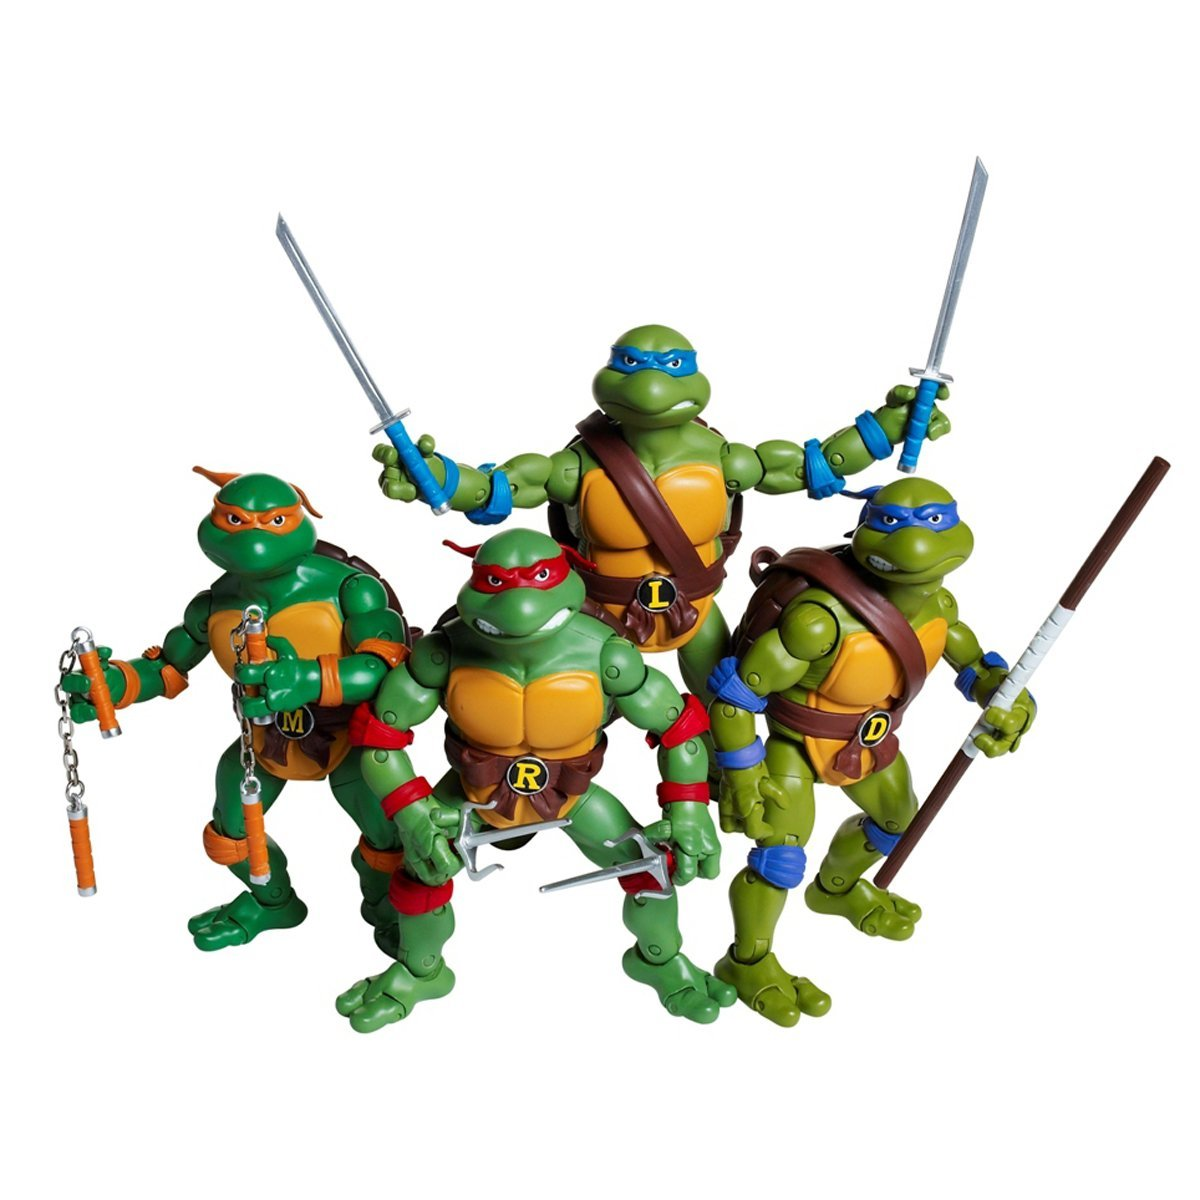 Ninja Turtles Toys : Teenage mutant ninja turtles classic set of figures by